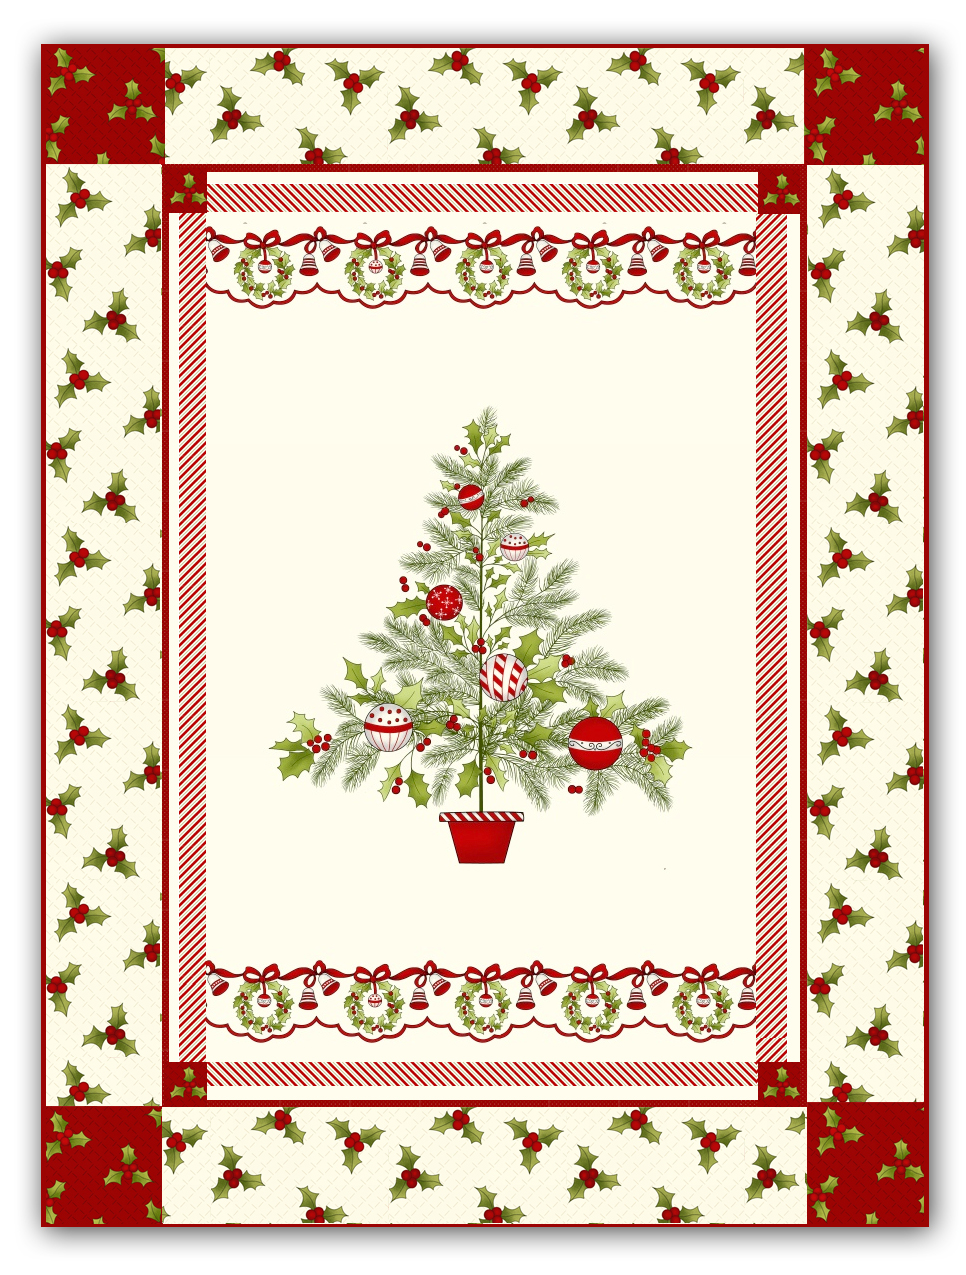 Christmas Quilt Patterns.Ring In Christmas Quilt Pattern Download With Optional Kit Optional Christmas Bling Pack By Mary Jane Carey